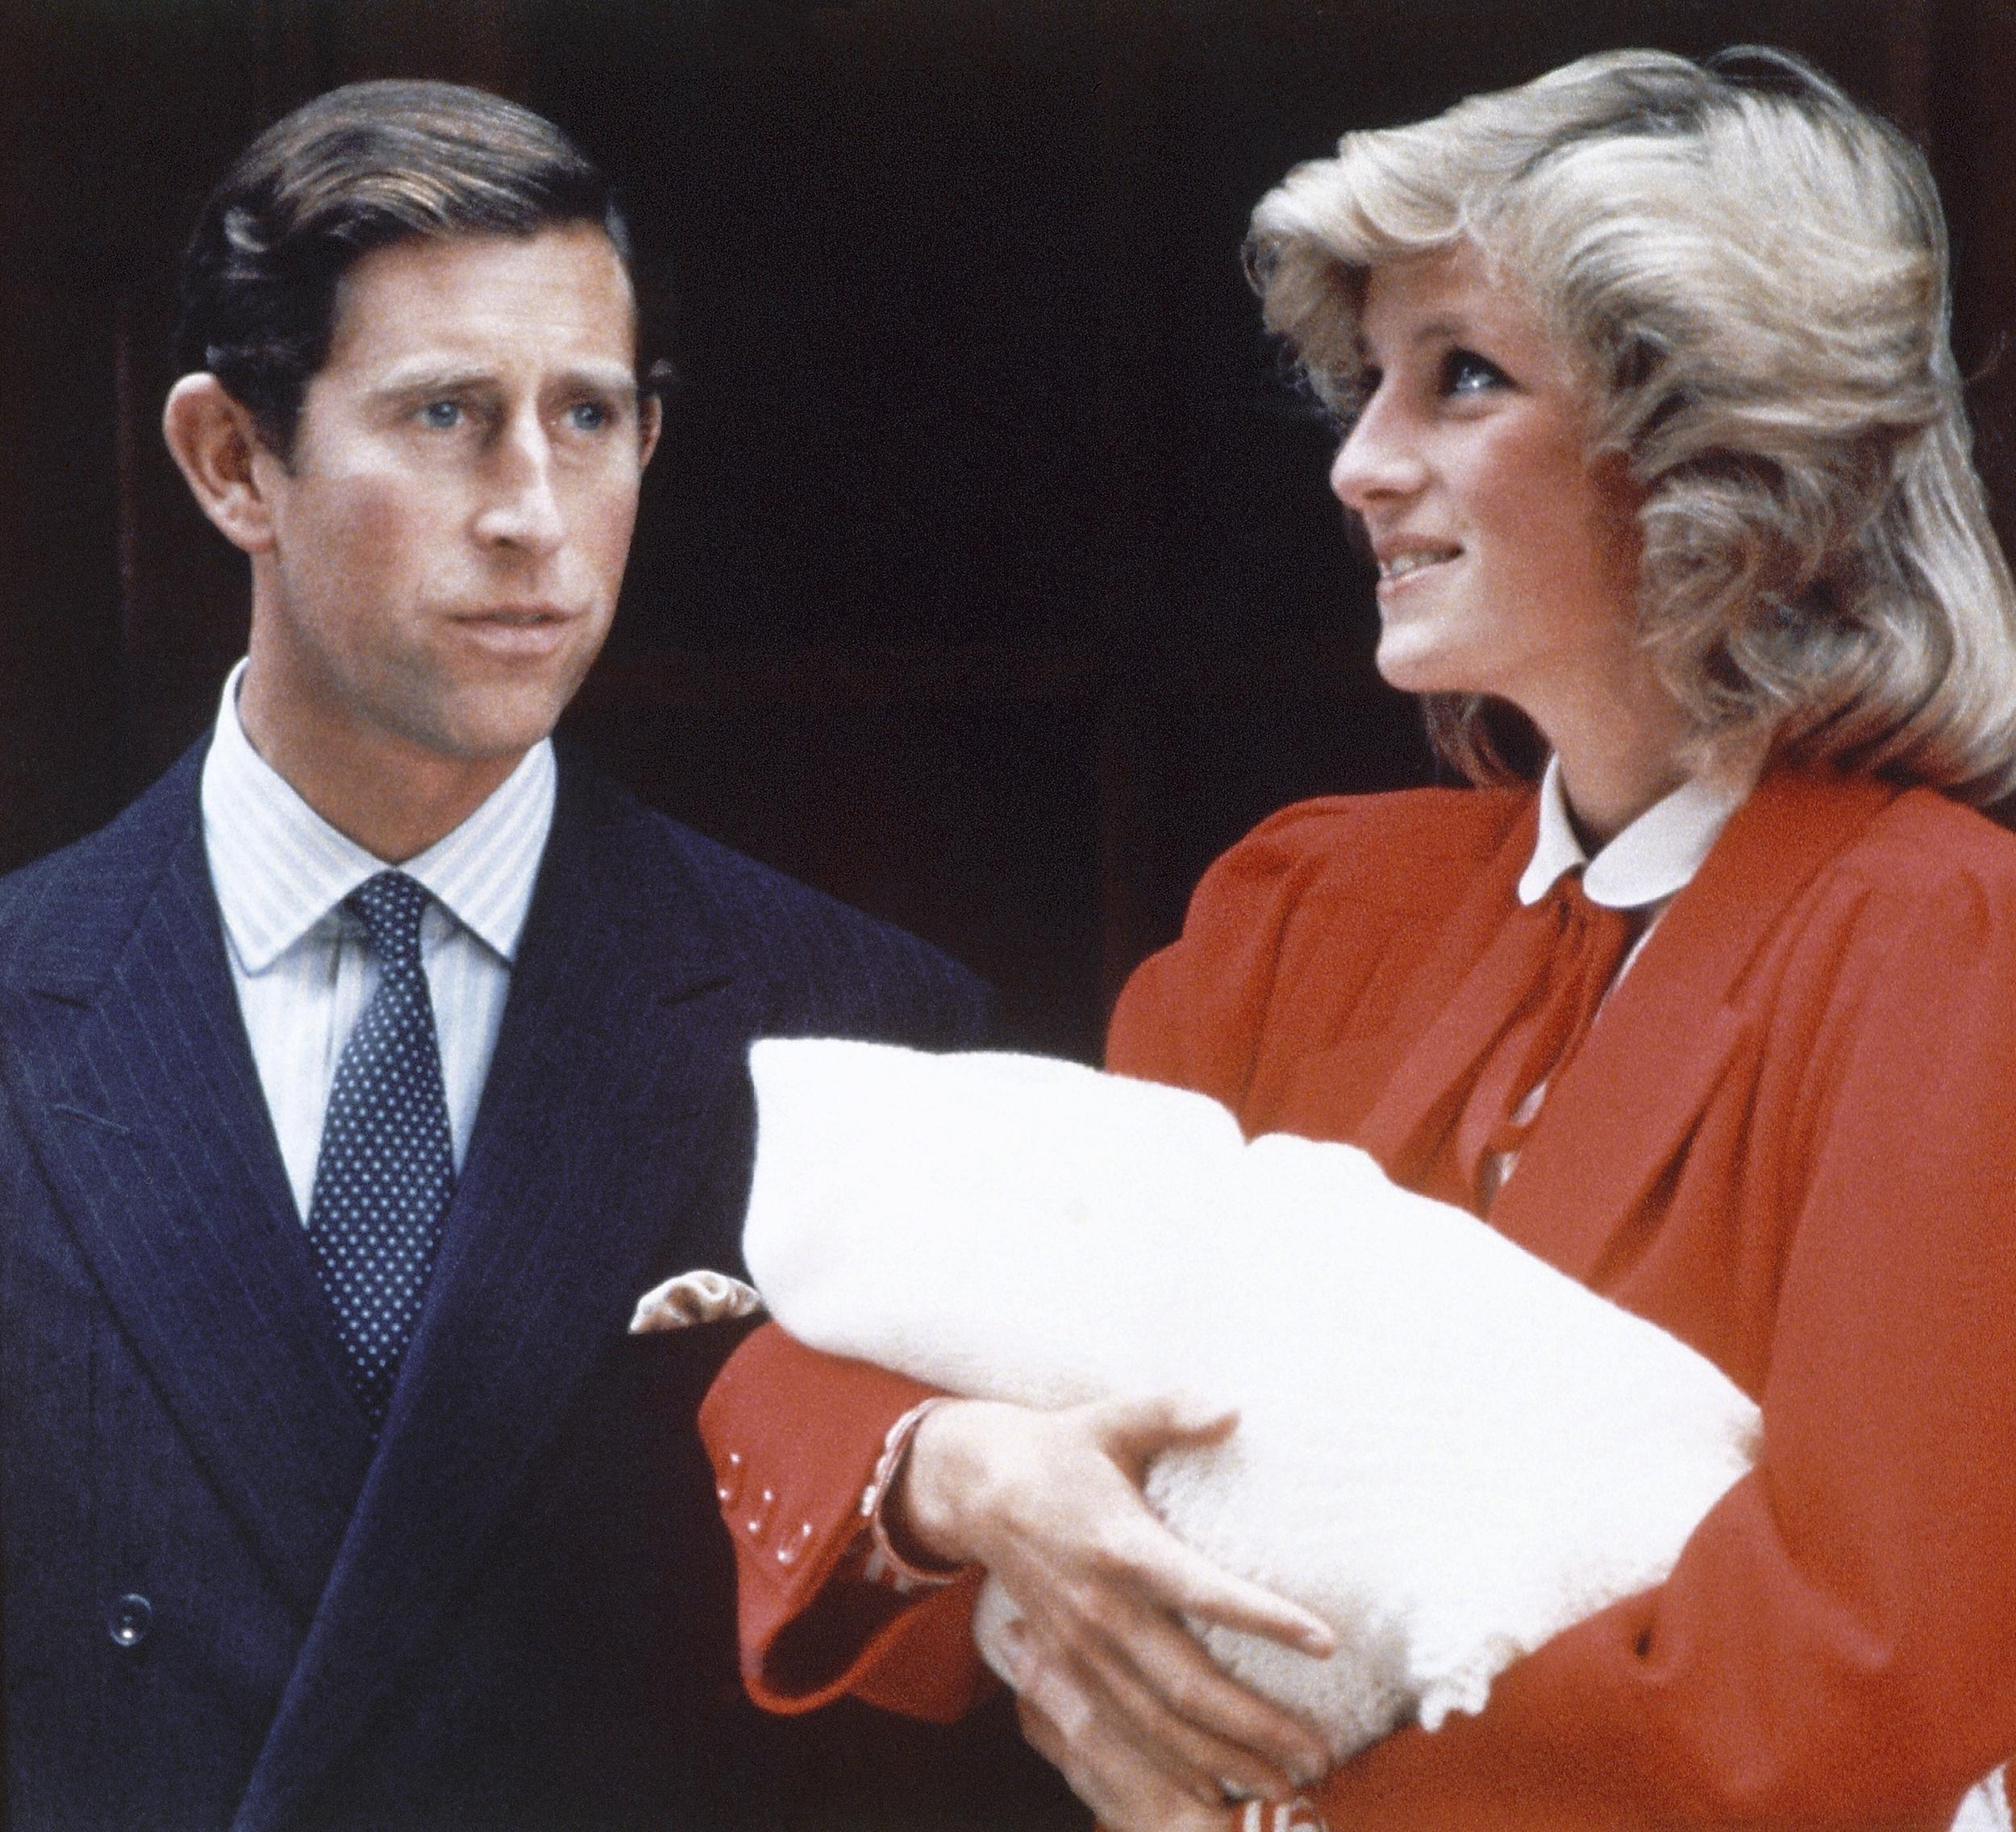 Prince Charles and Princess Diana leave St. Mary's Hospital in London, with Prince Harry on September 16, 1984.